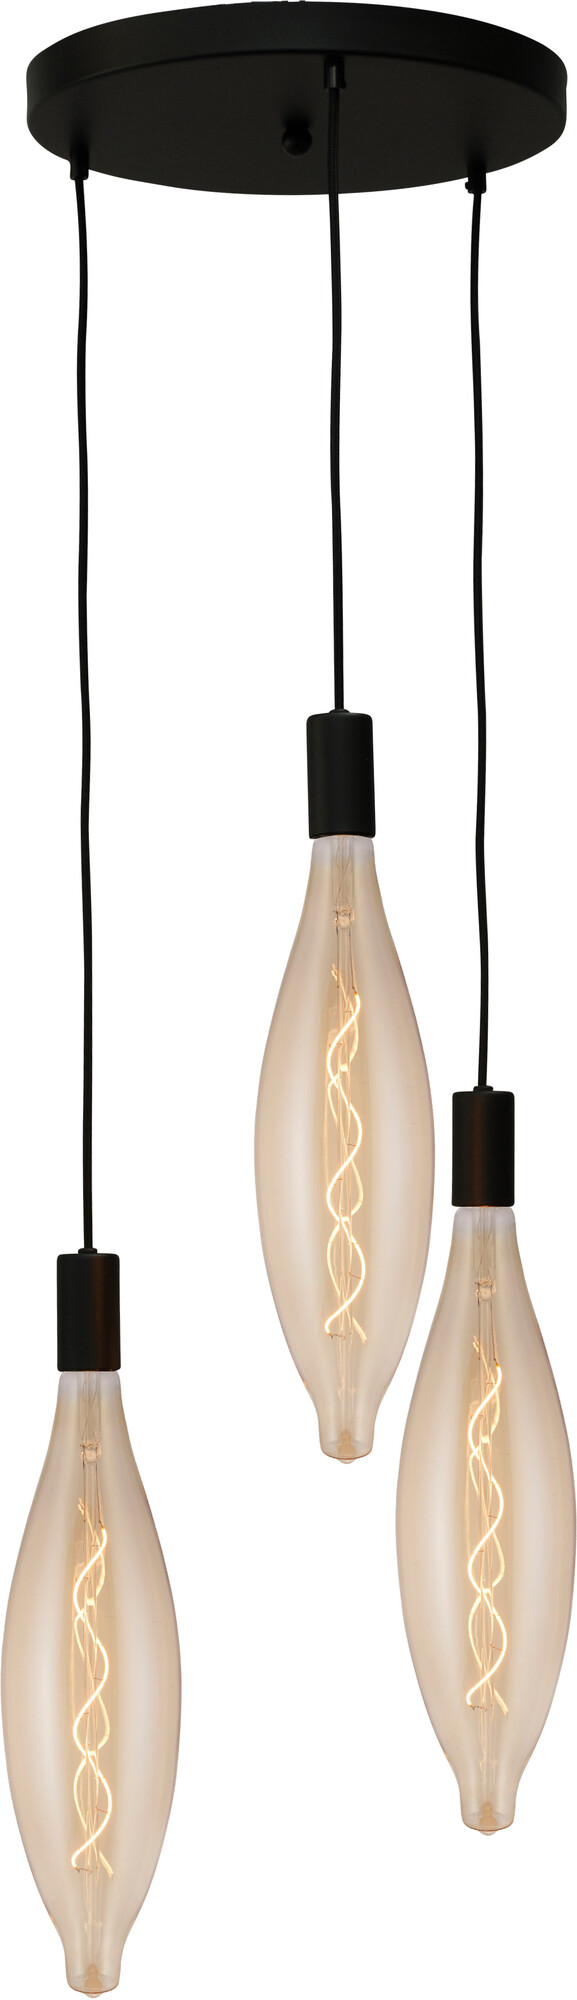 WIRE hanglampen